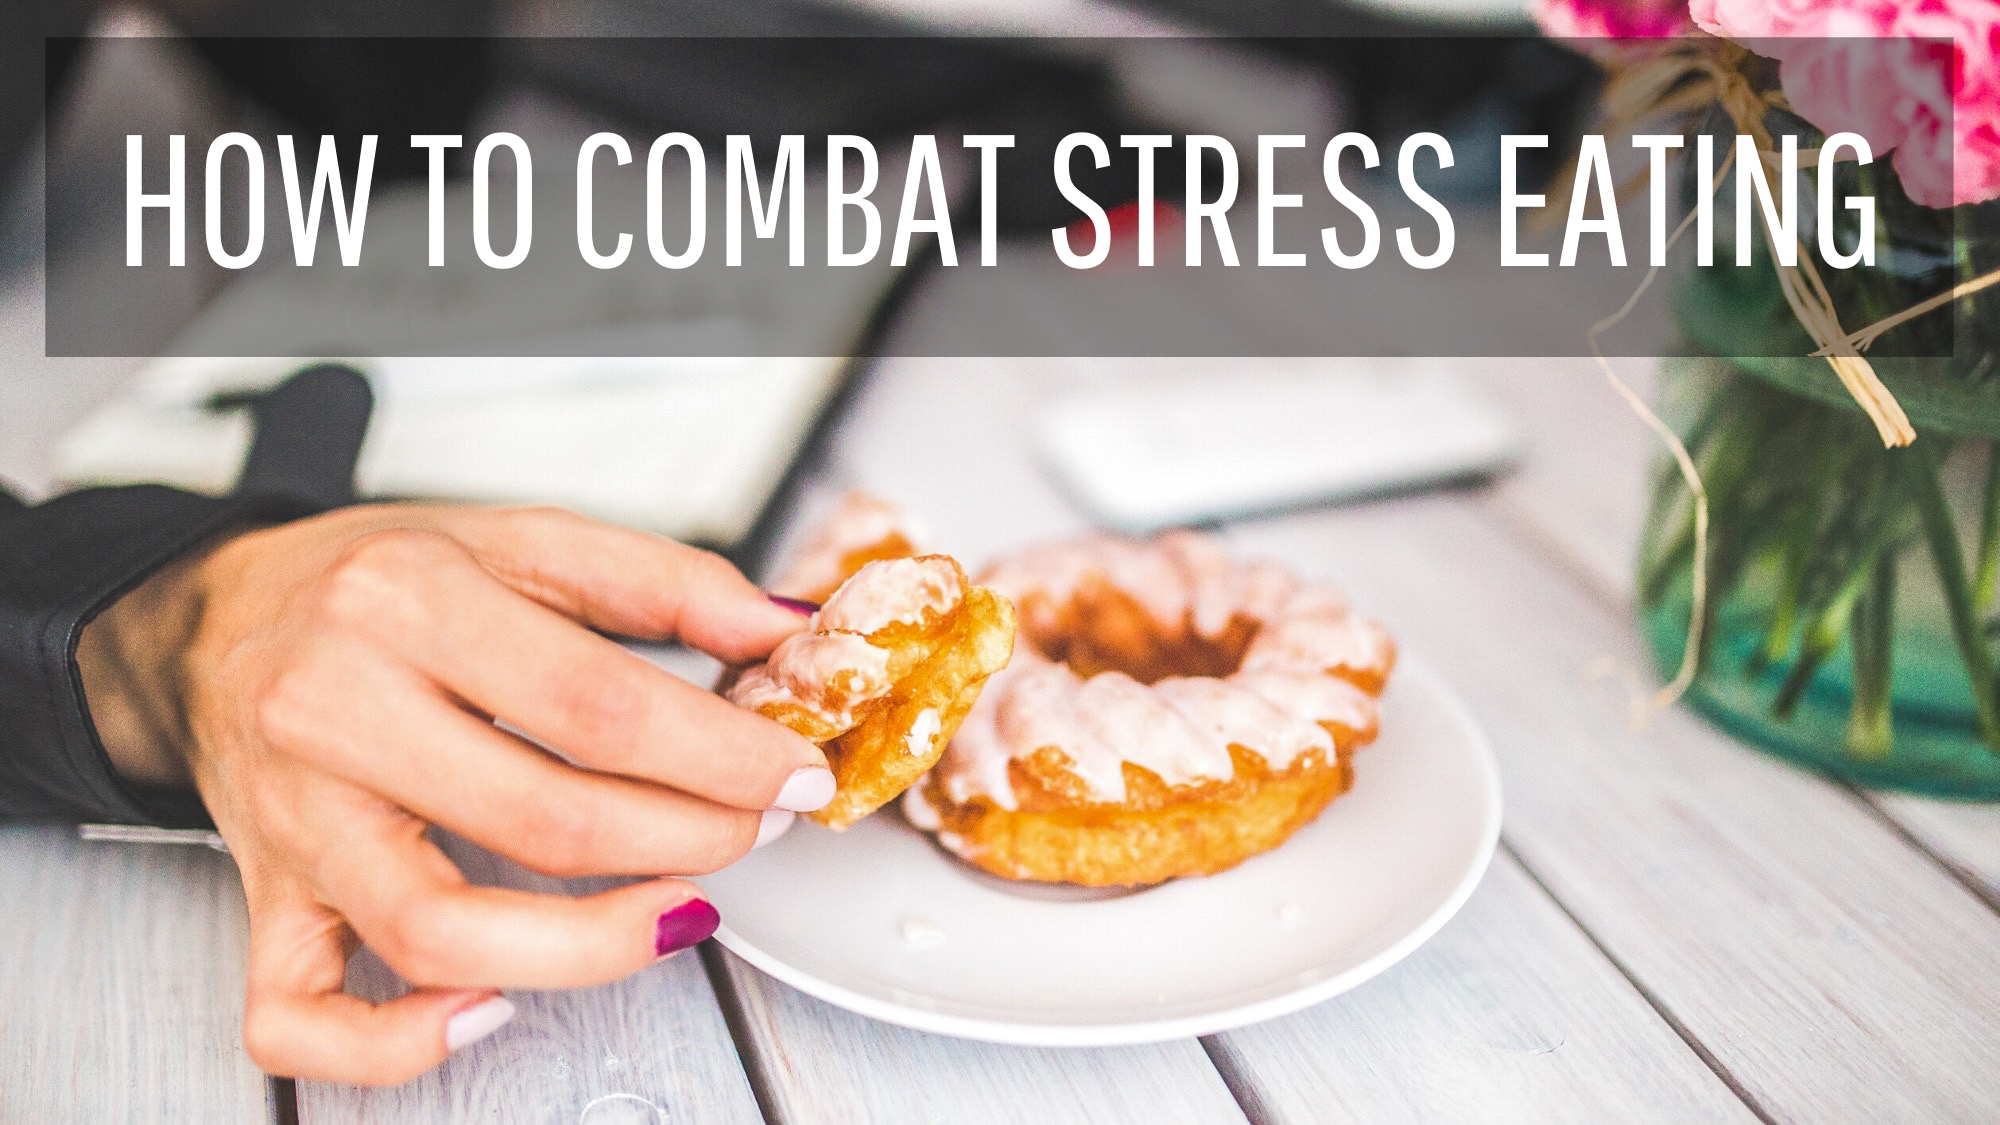 8 Tips To Overcome Stress Eating